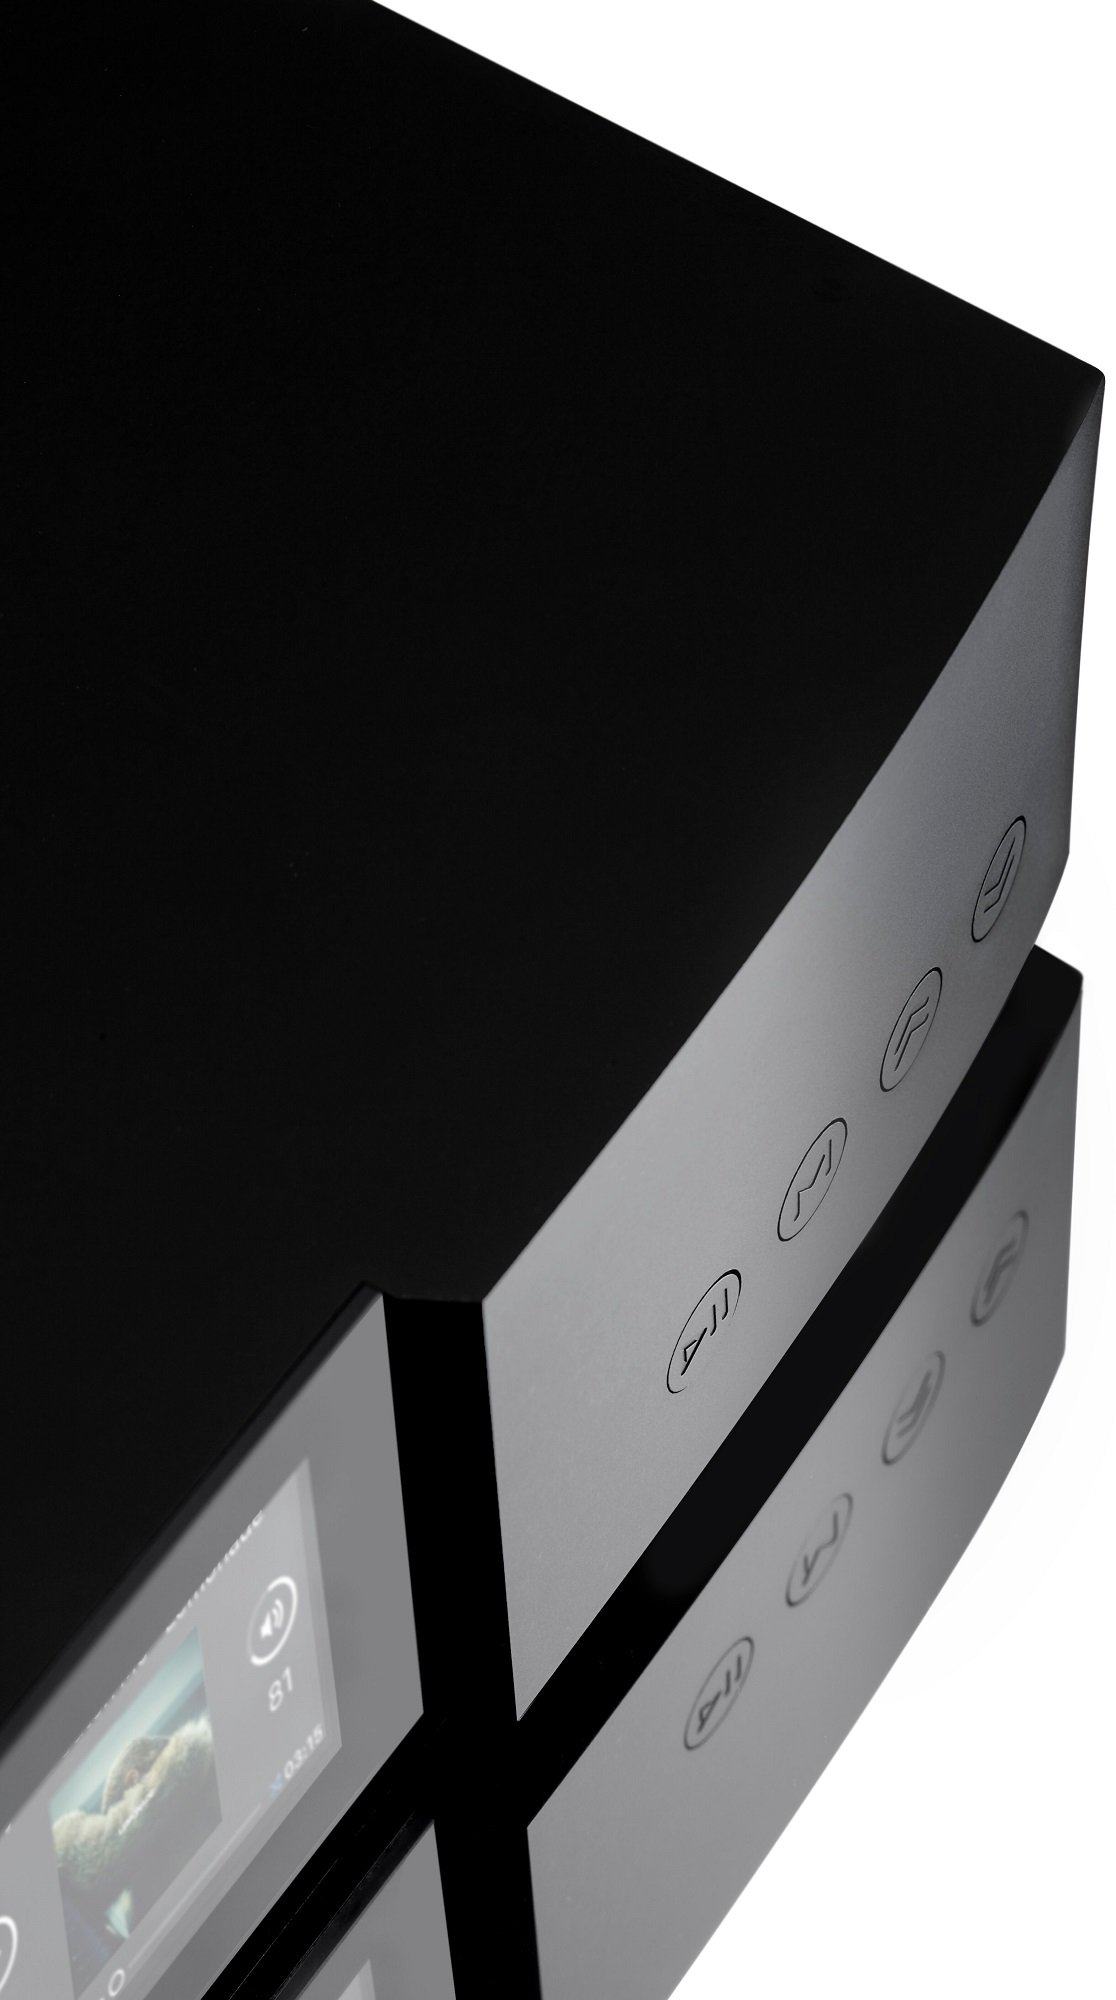 AURALiC ARIES G2 Ultimate wireless Streamer for your DAC by AURALiC (Image #5)